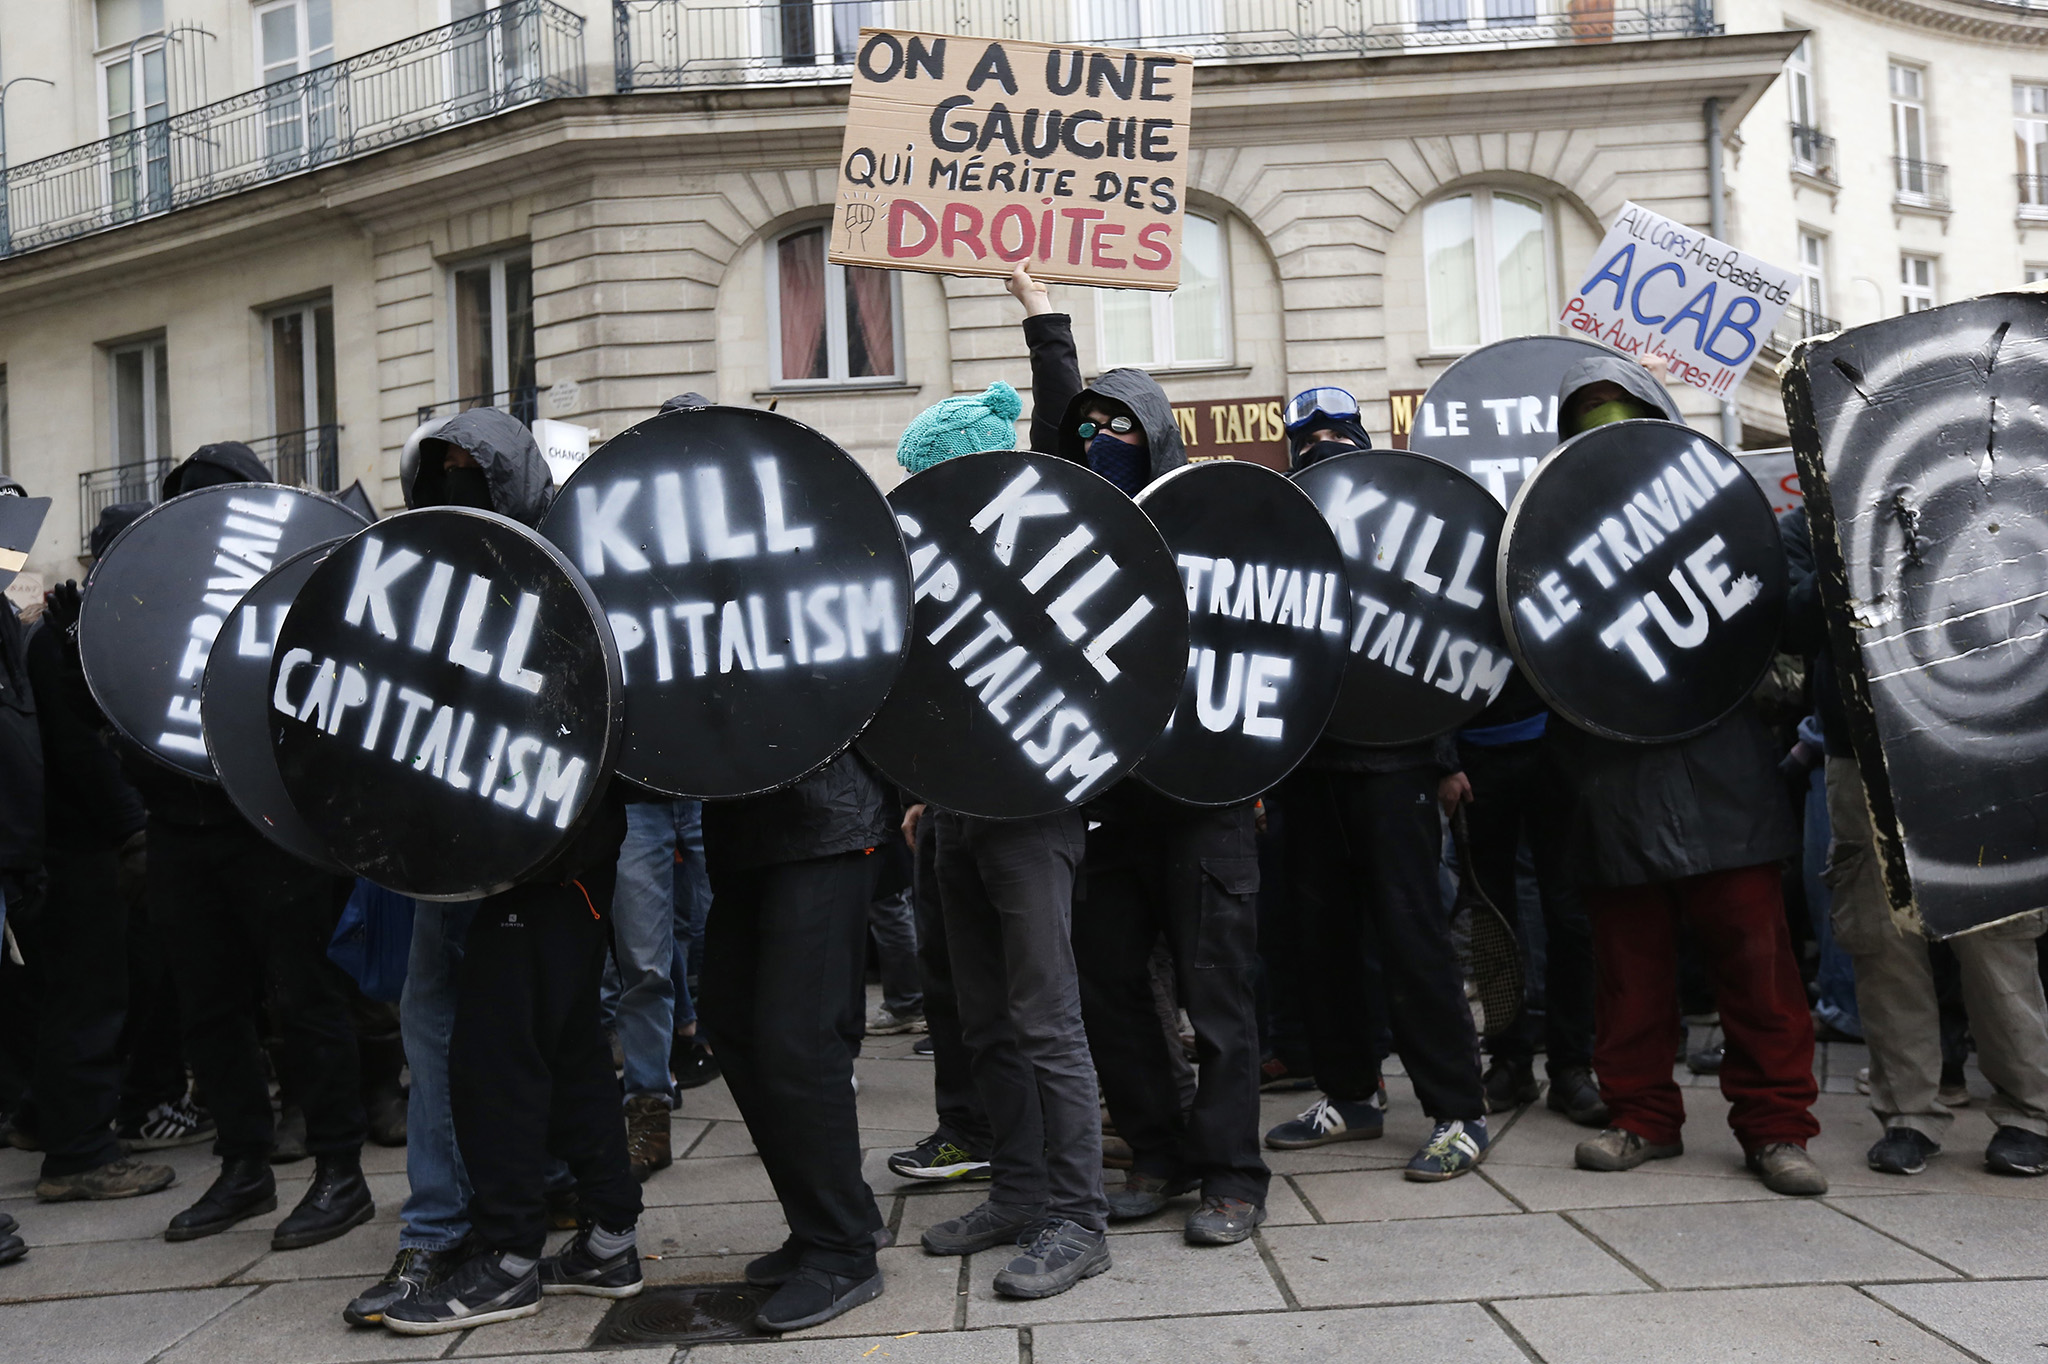 "French high school and university students attend a demonstration against the French labour law proposal in Nantes, France, as part of a nationwide labor reform protests and strikes. The slogan reads "" We have a leftist party who deserves to be punched""."